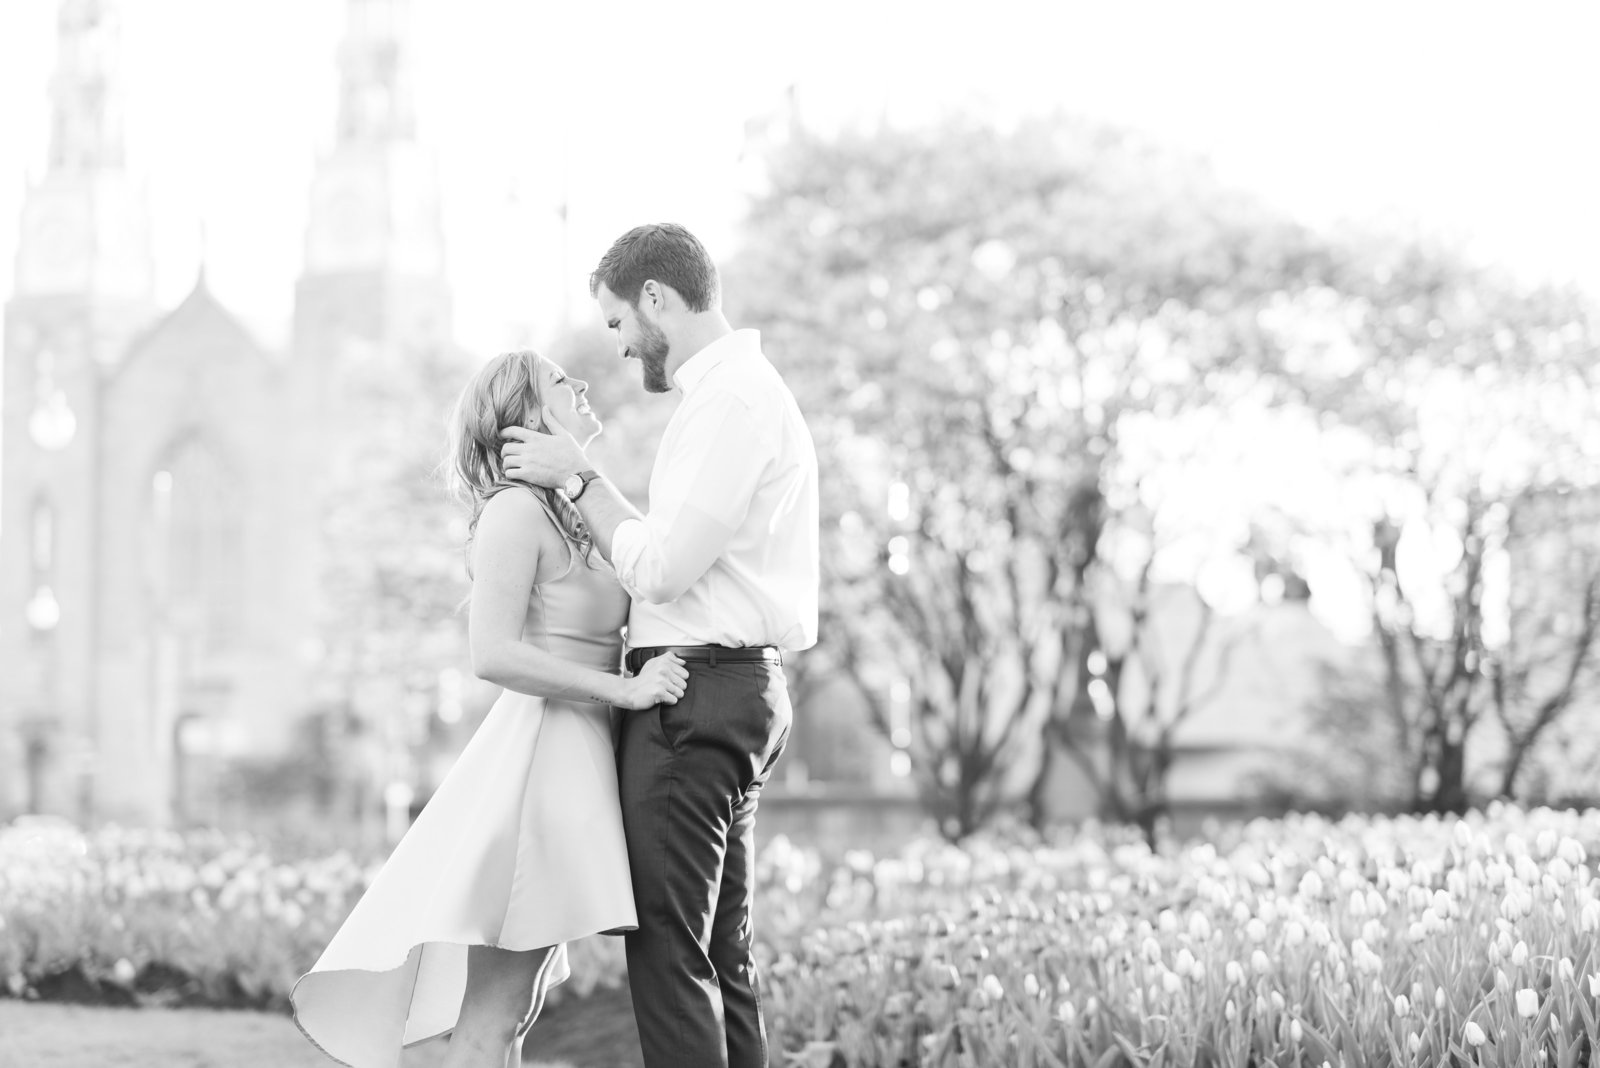 Spring-Engagement-Photos-Ottawa-050216